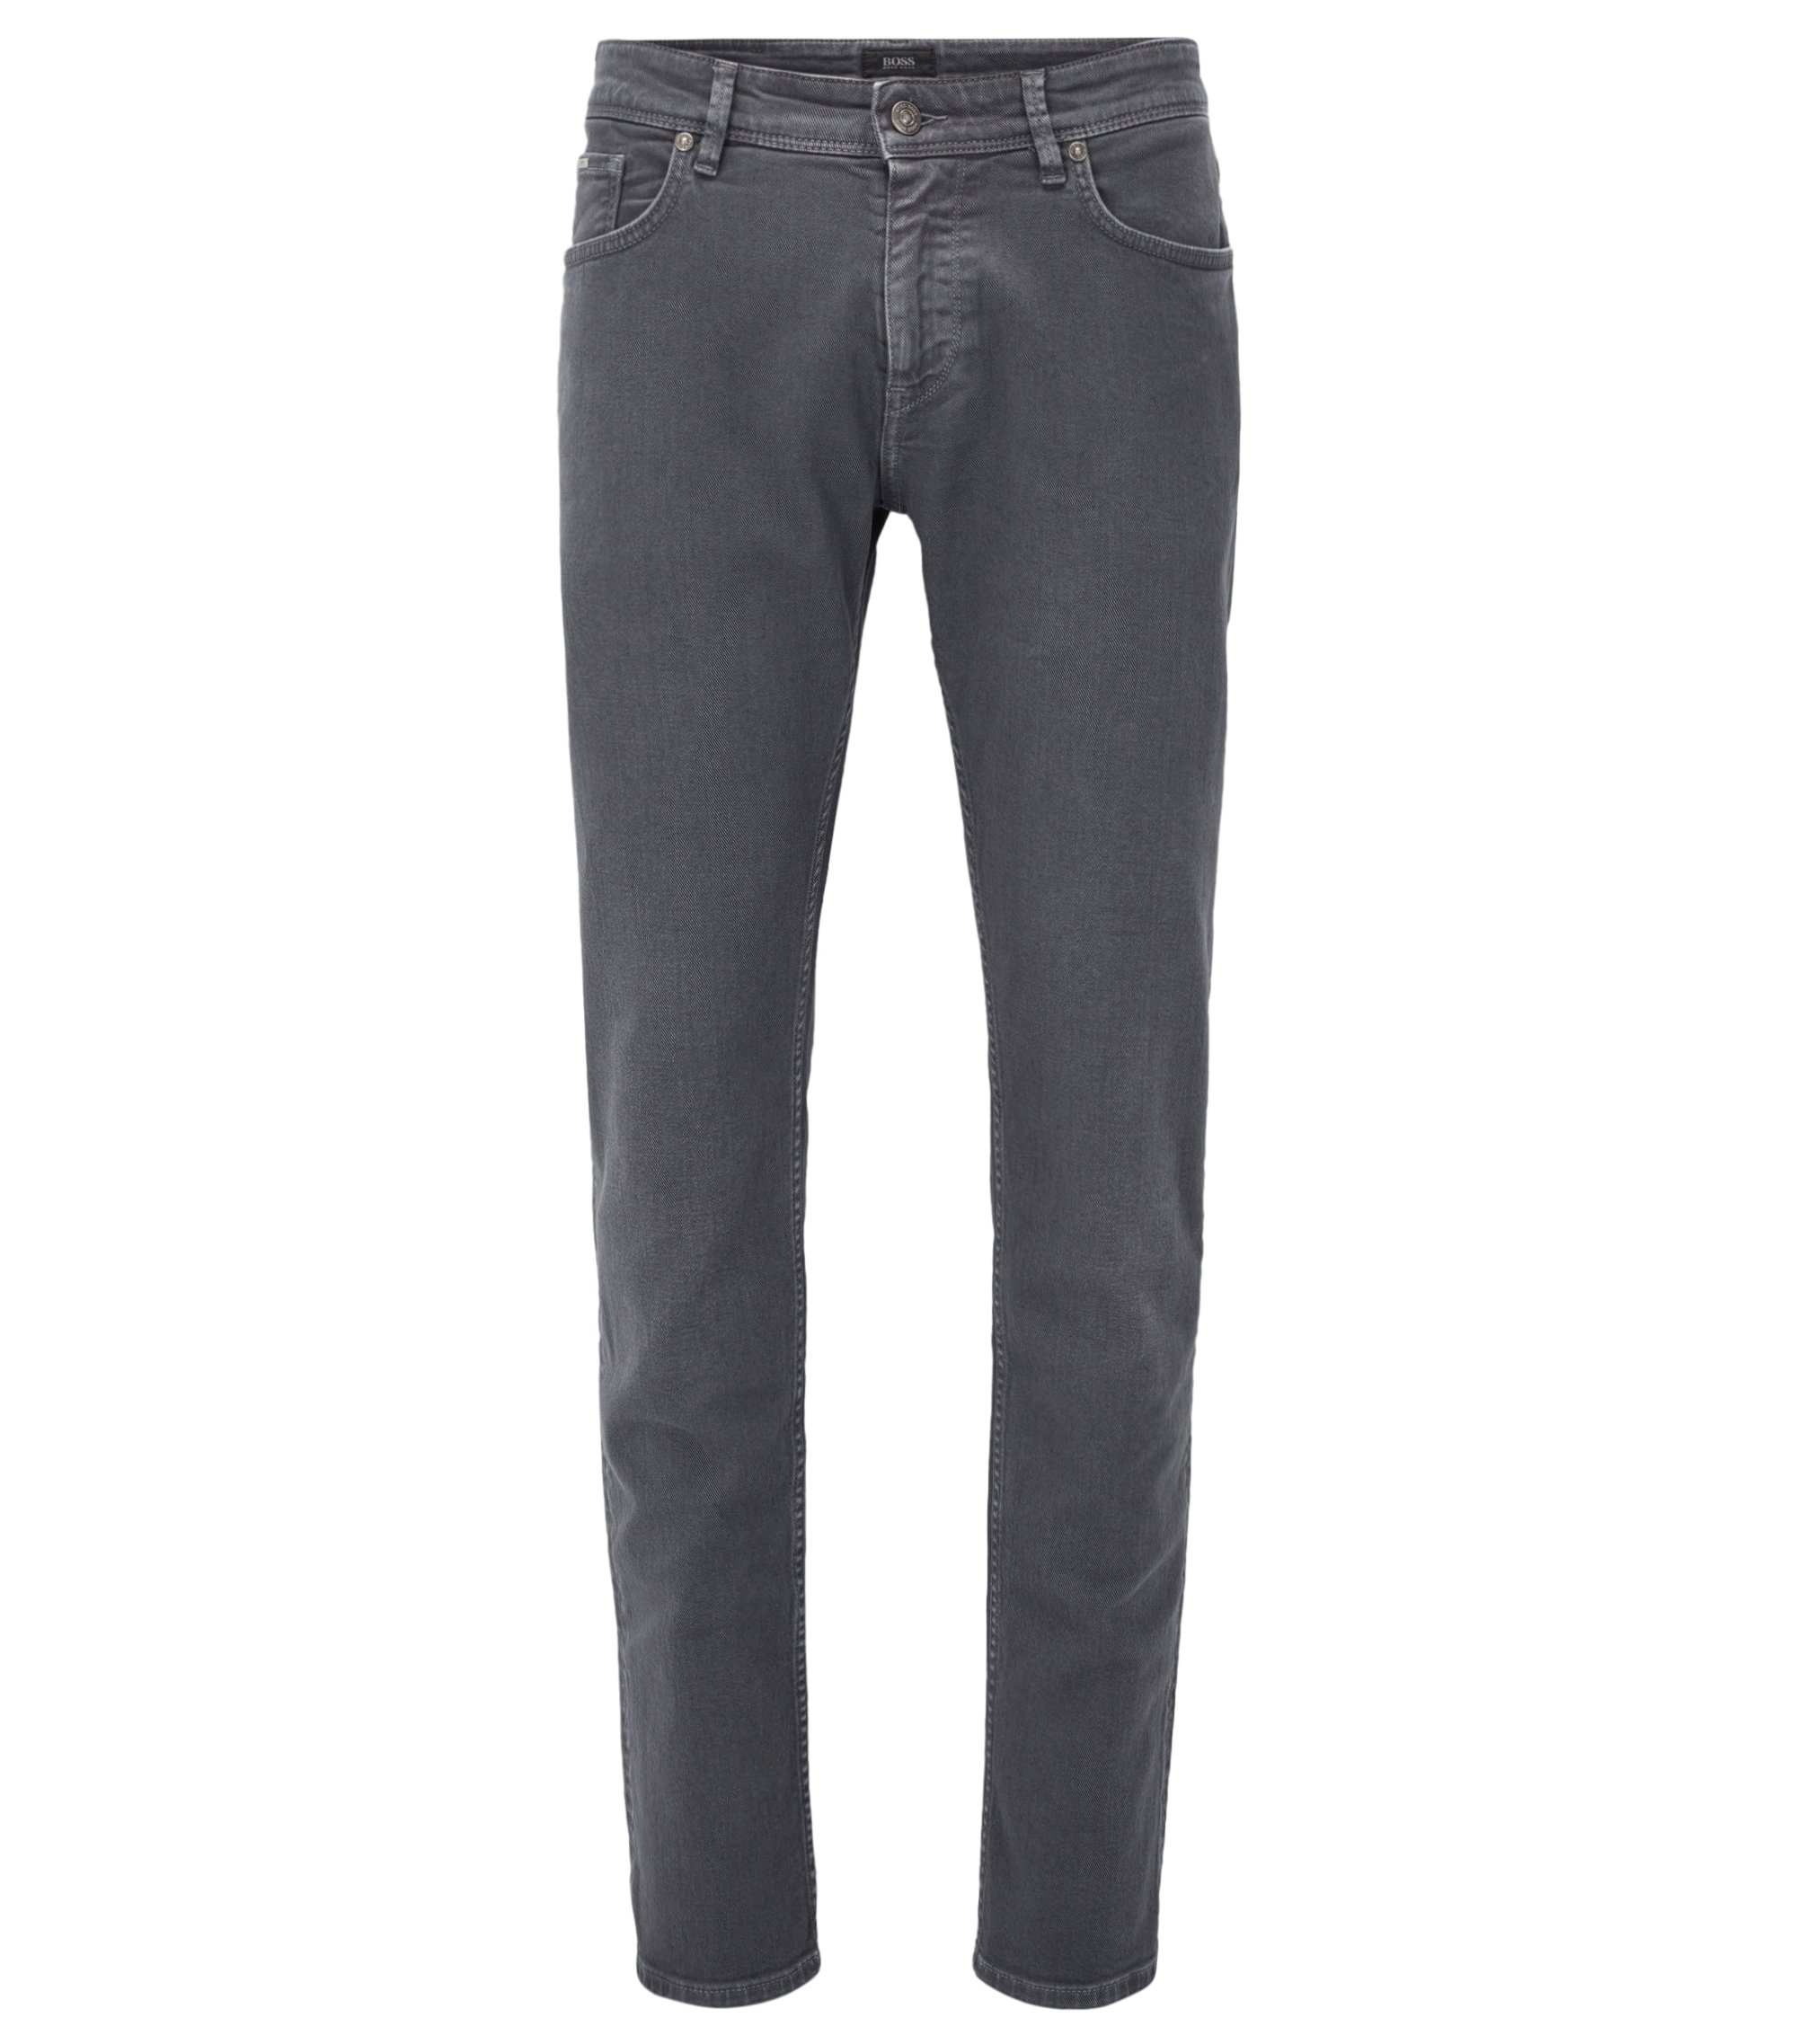 Jeans Slim Fit en denim teint confortable, Gris sombre